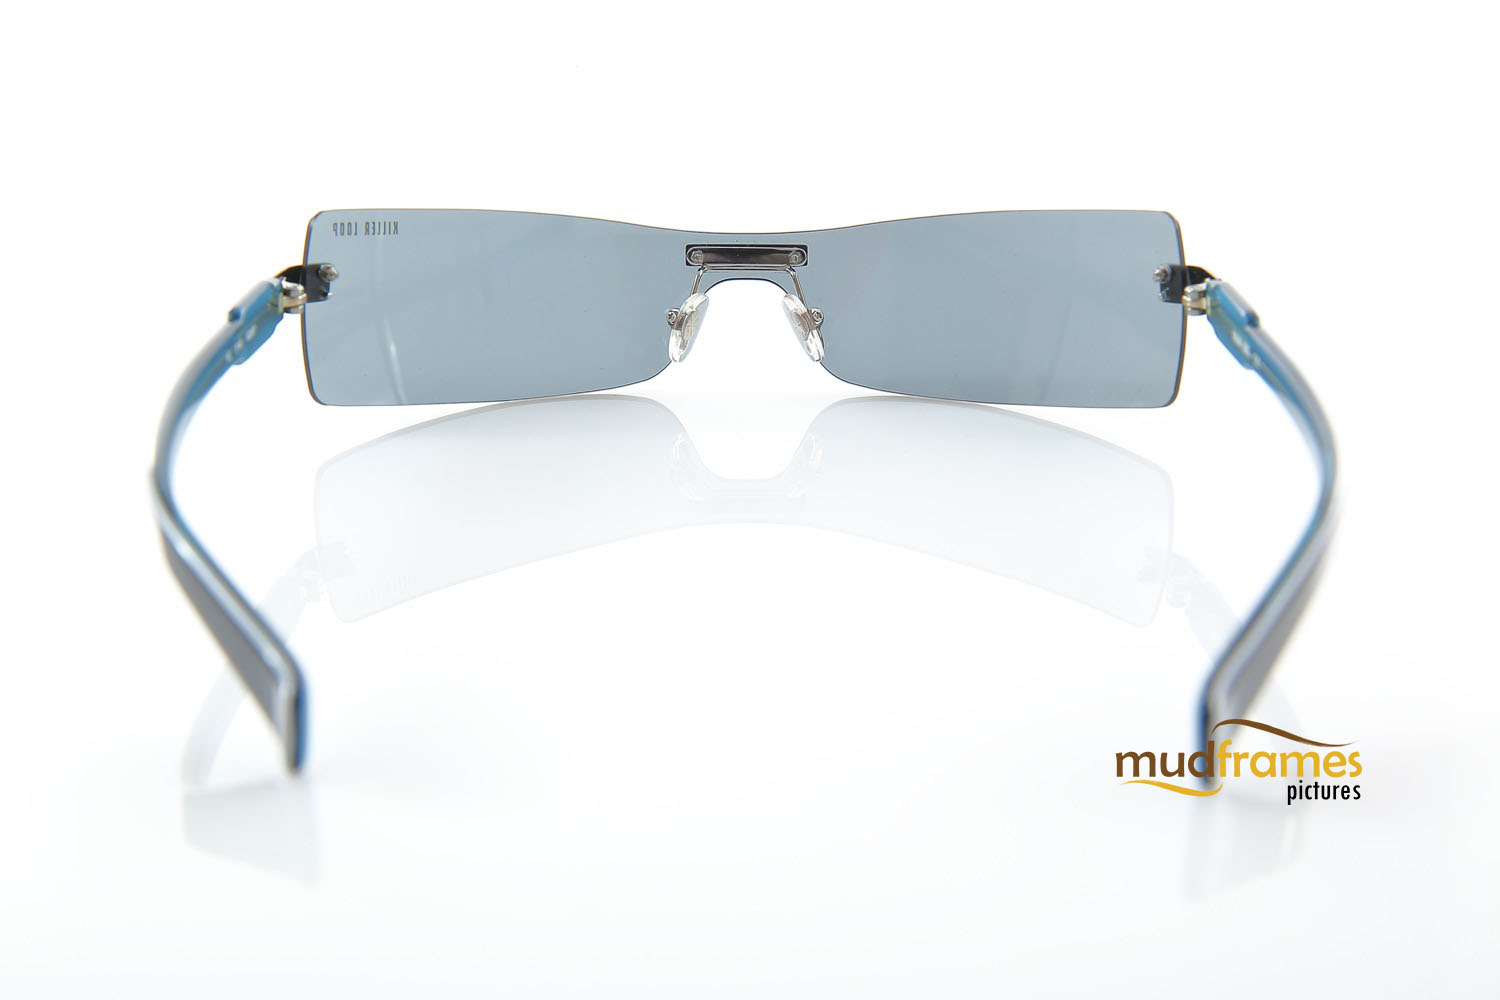 Spectacles Product Photography